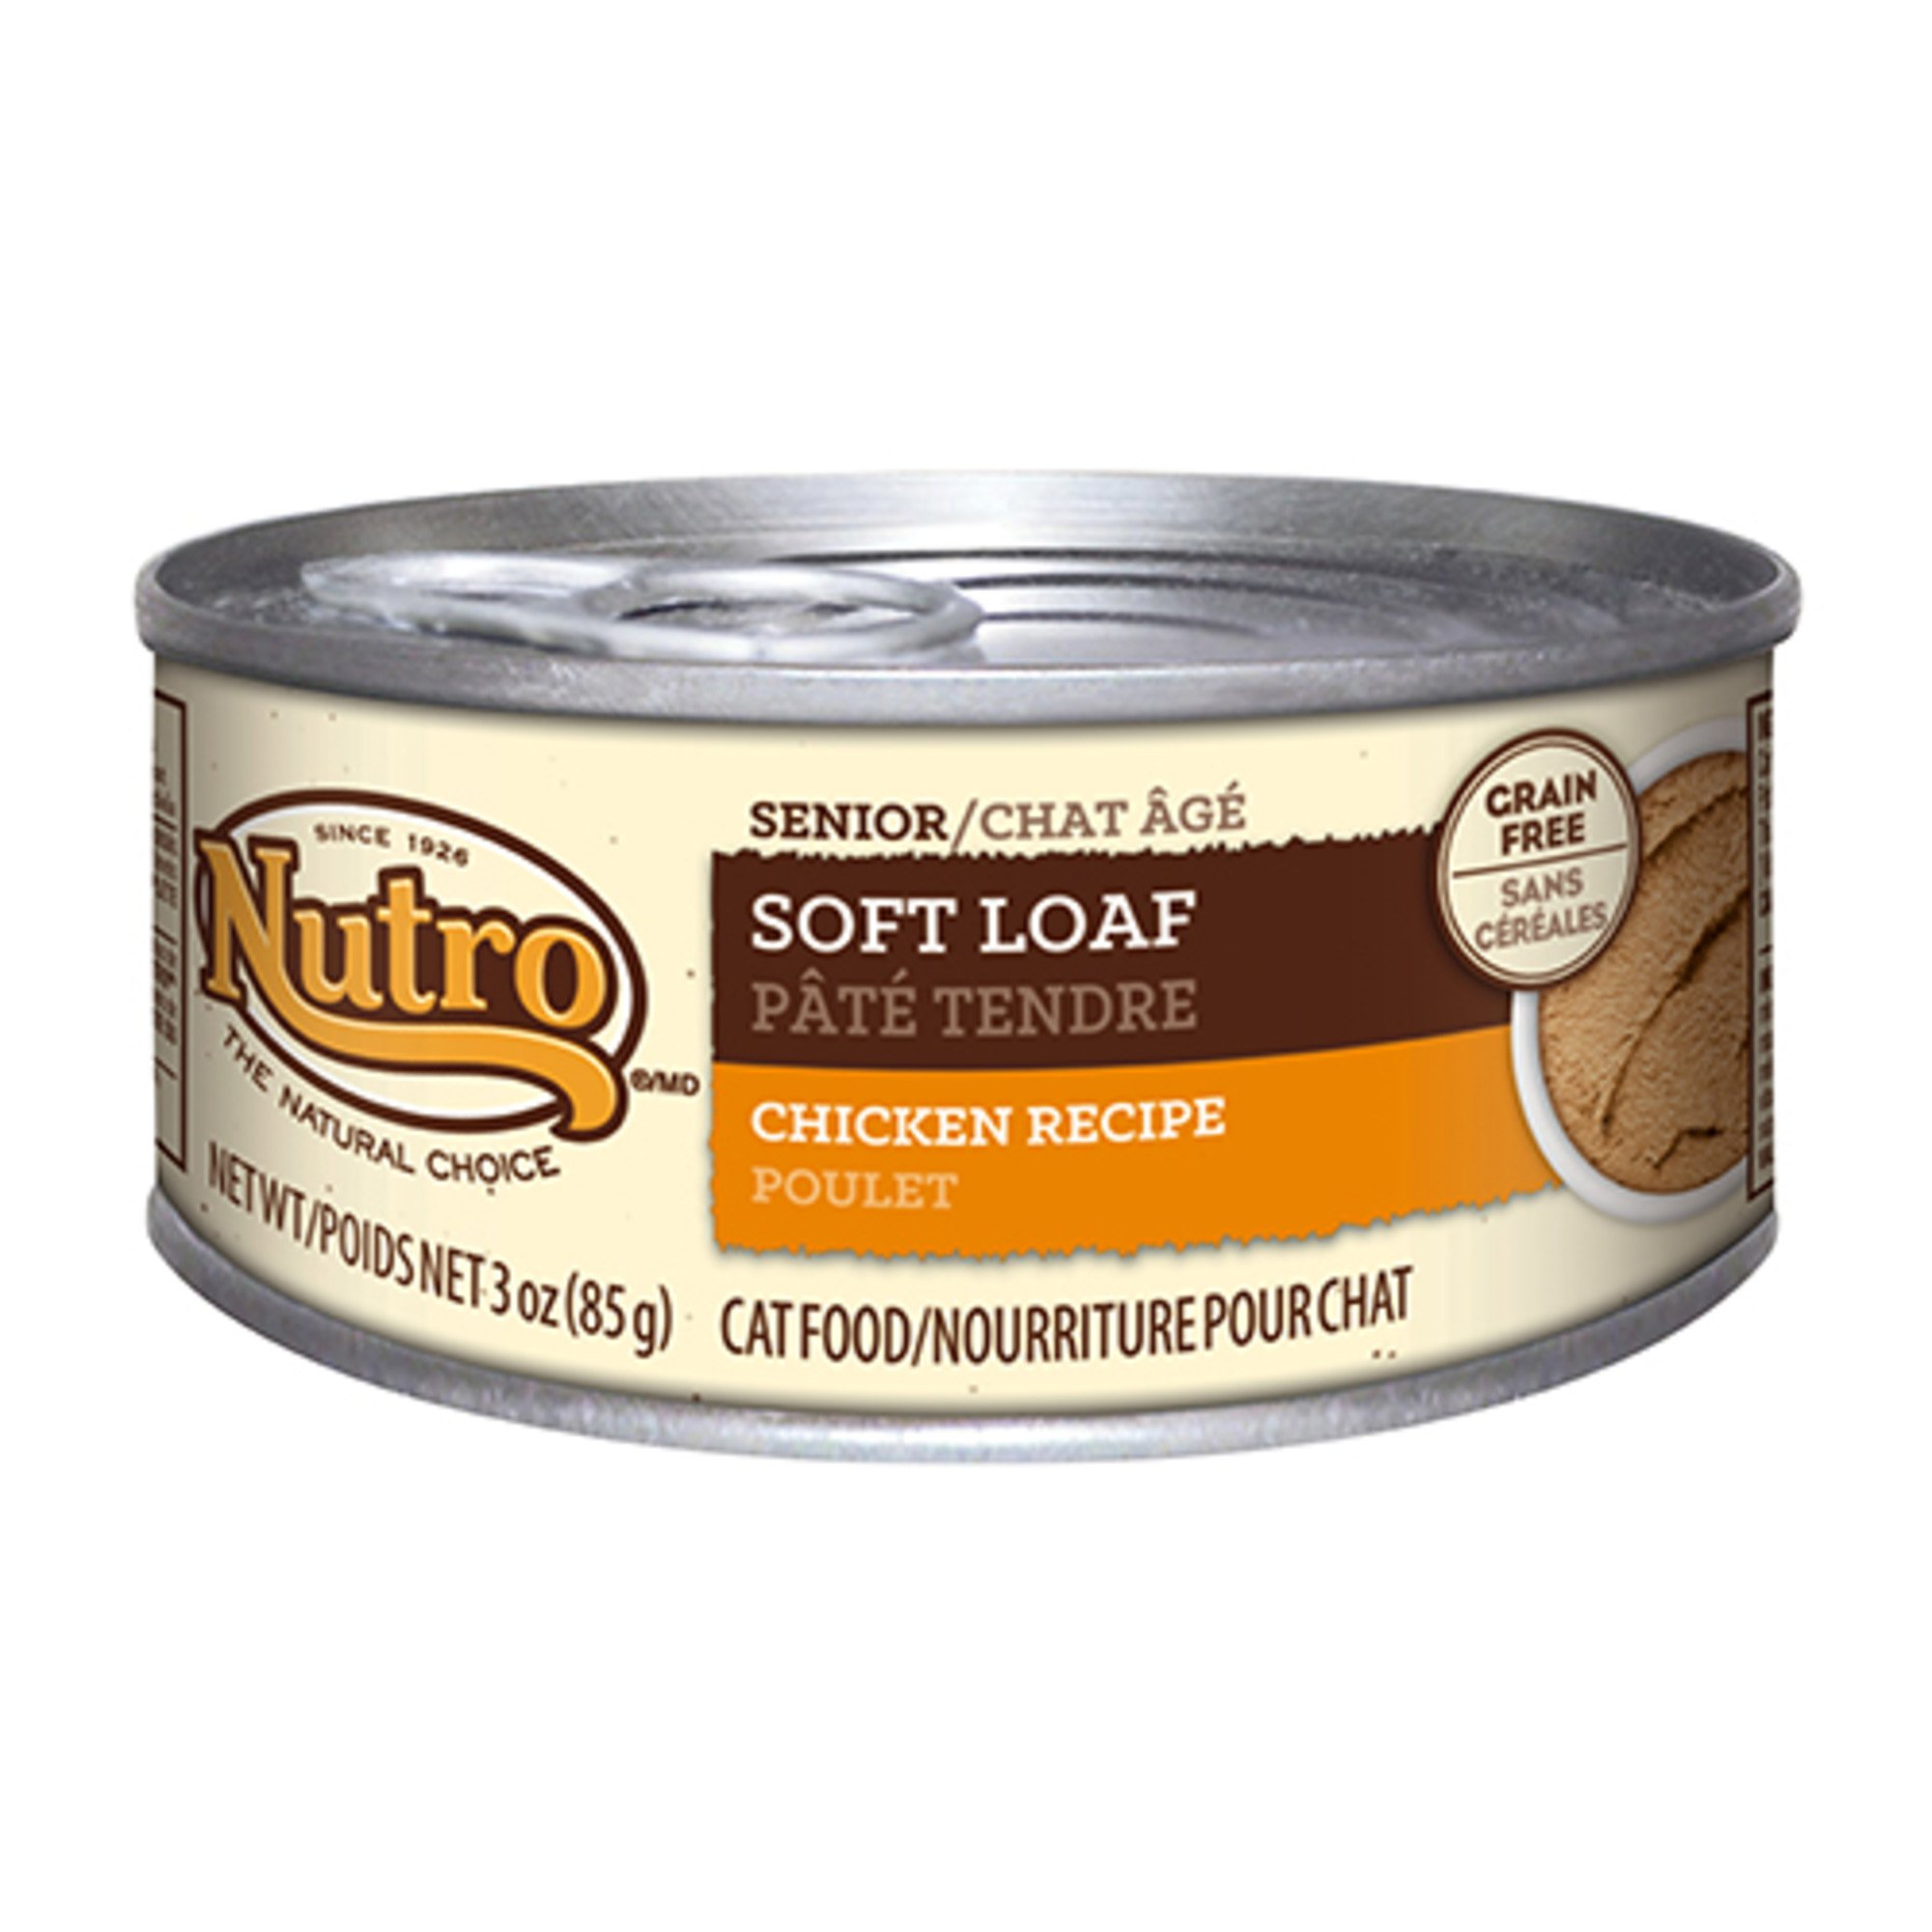 Nutro Soft Loaf Chicken Recipe Canned Senior Cat Food